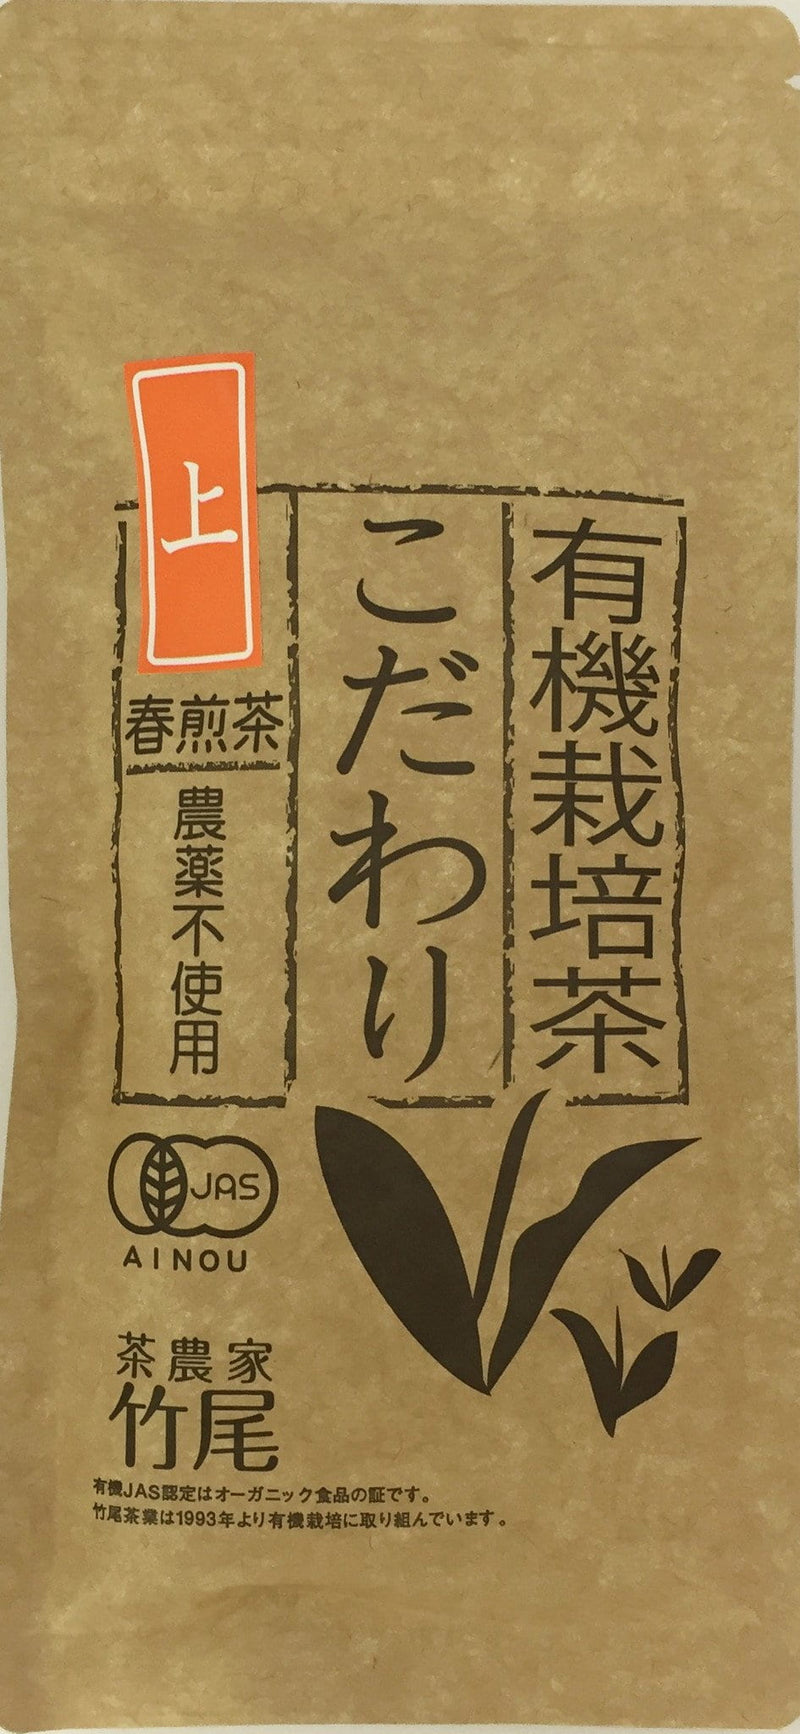 Takeo Tea Farm: Organic Spring Sencha Green Tea, Kodawari